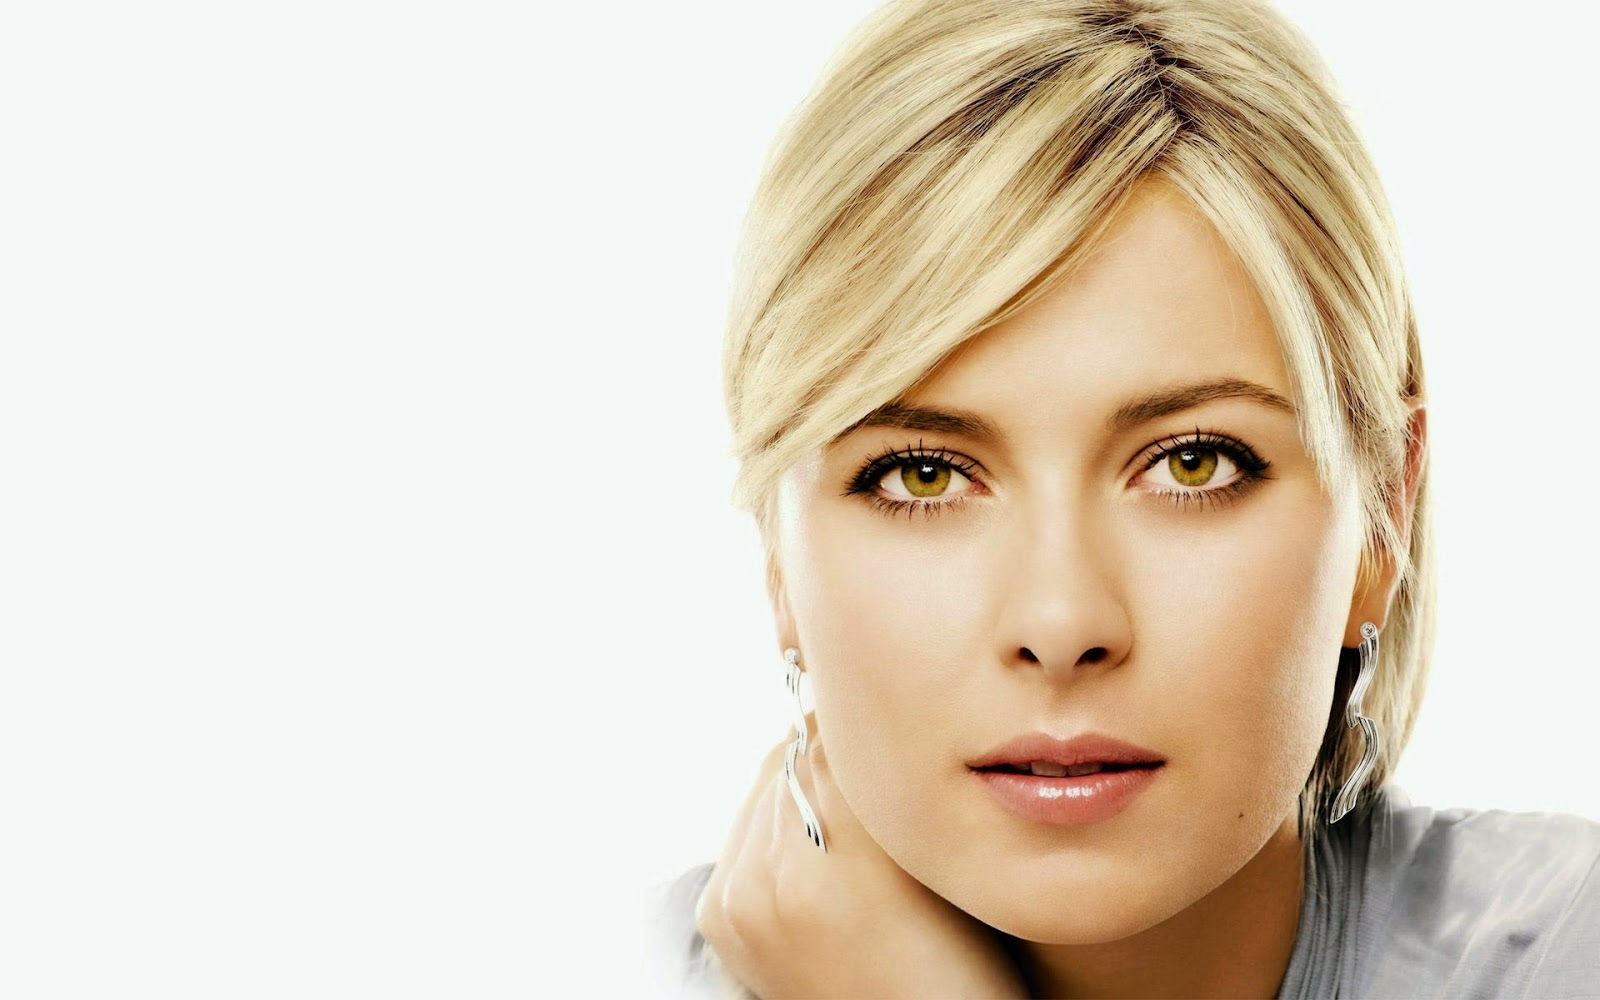 Maria Sharapova Wallpaper 23   1600 X 1000 stmednet 1600x1000